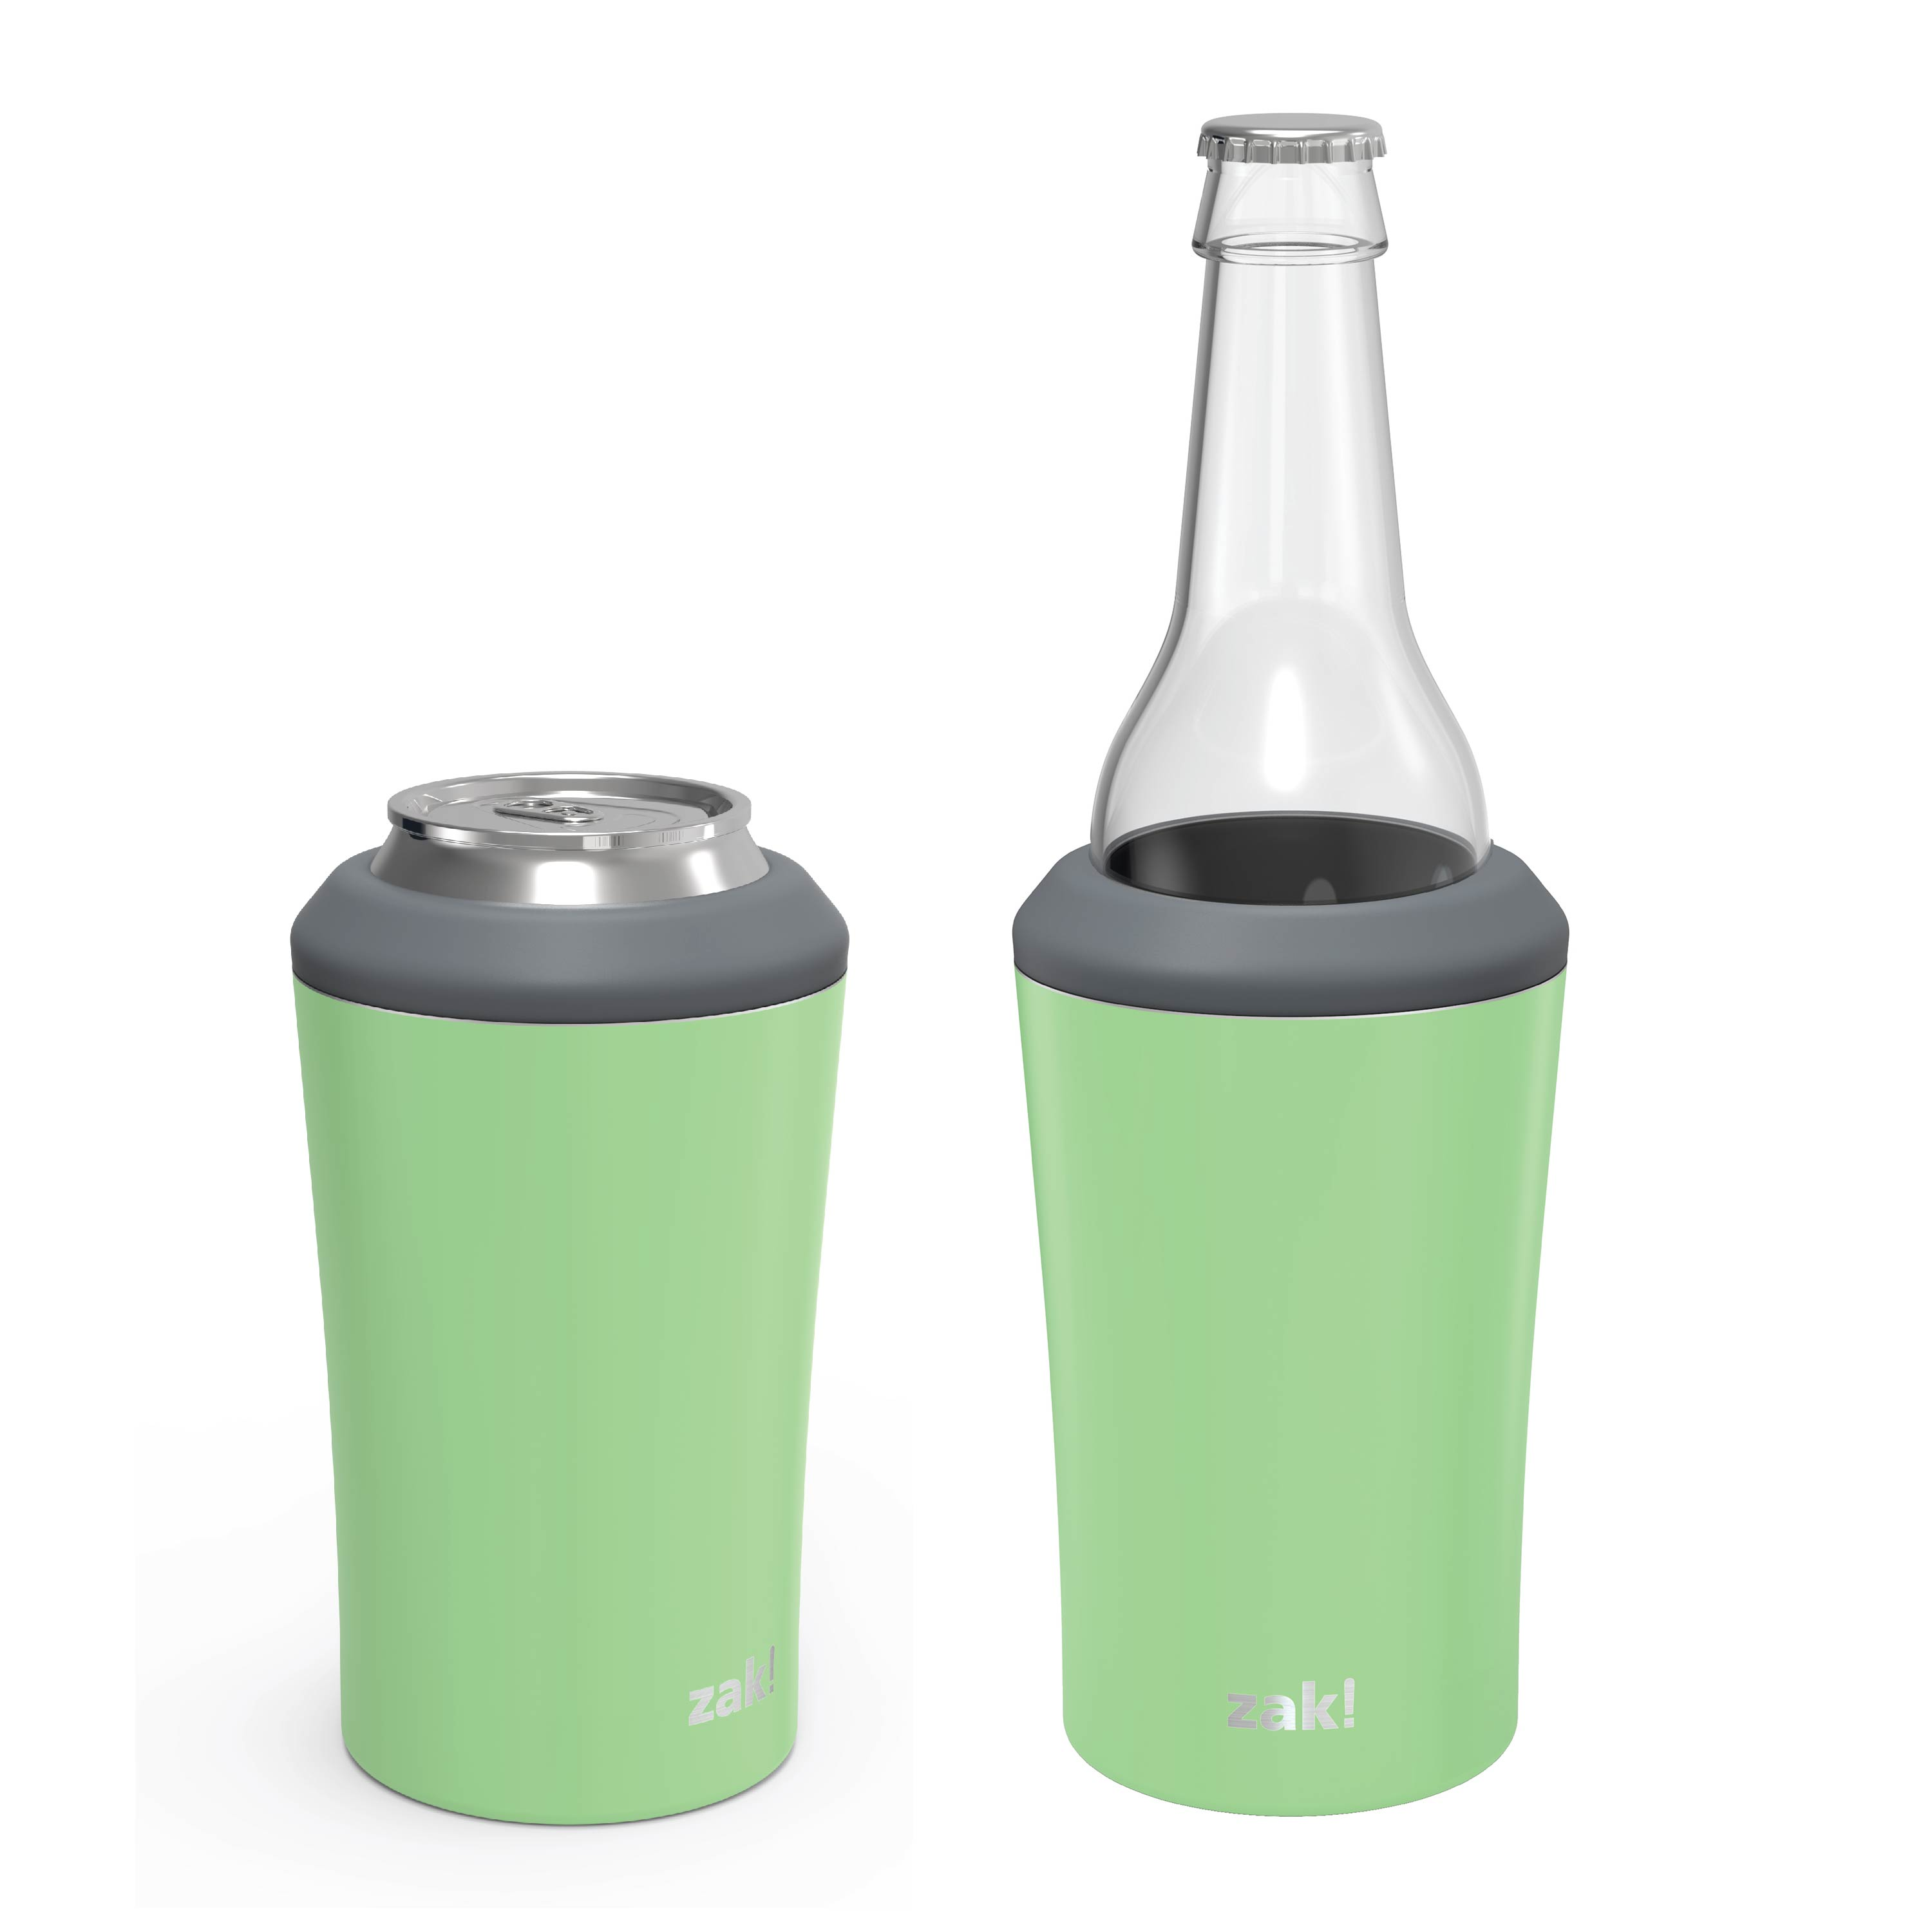 Zak Hydration 12 ounce Double Wall Stainless Steel Can and Bottle Cooler with Vacuum Insulation, Pistachio slideshow image 3